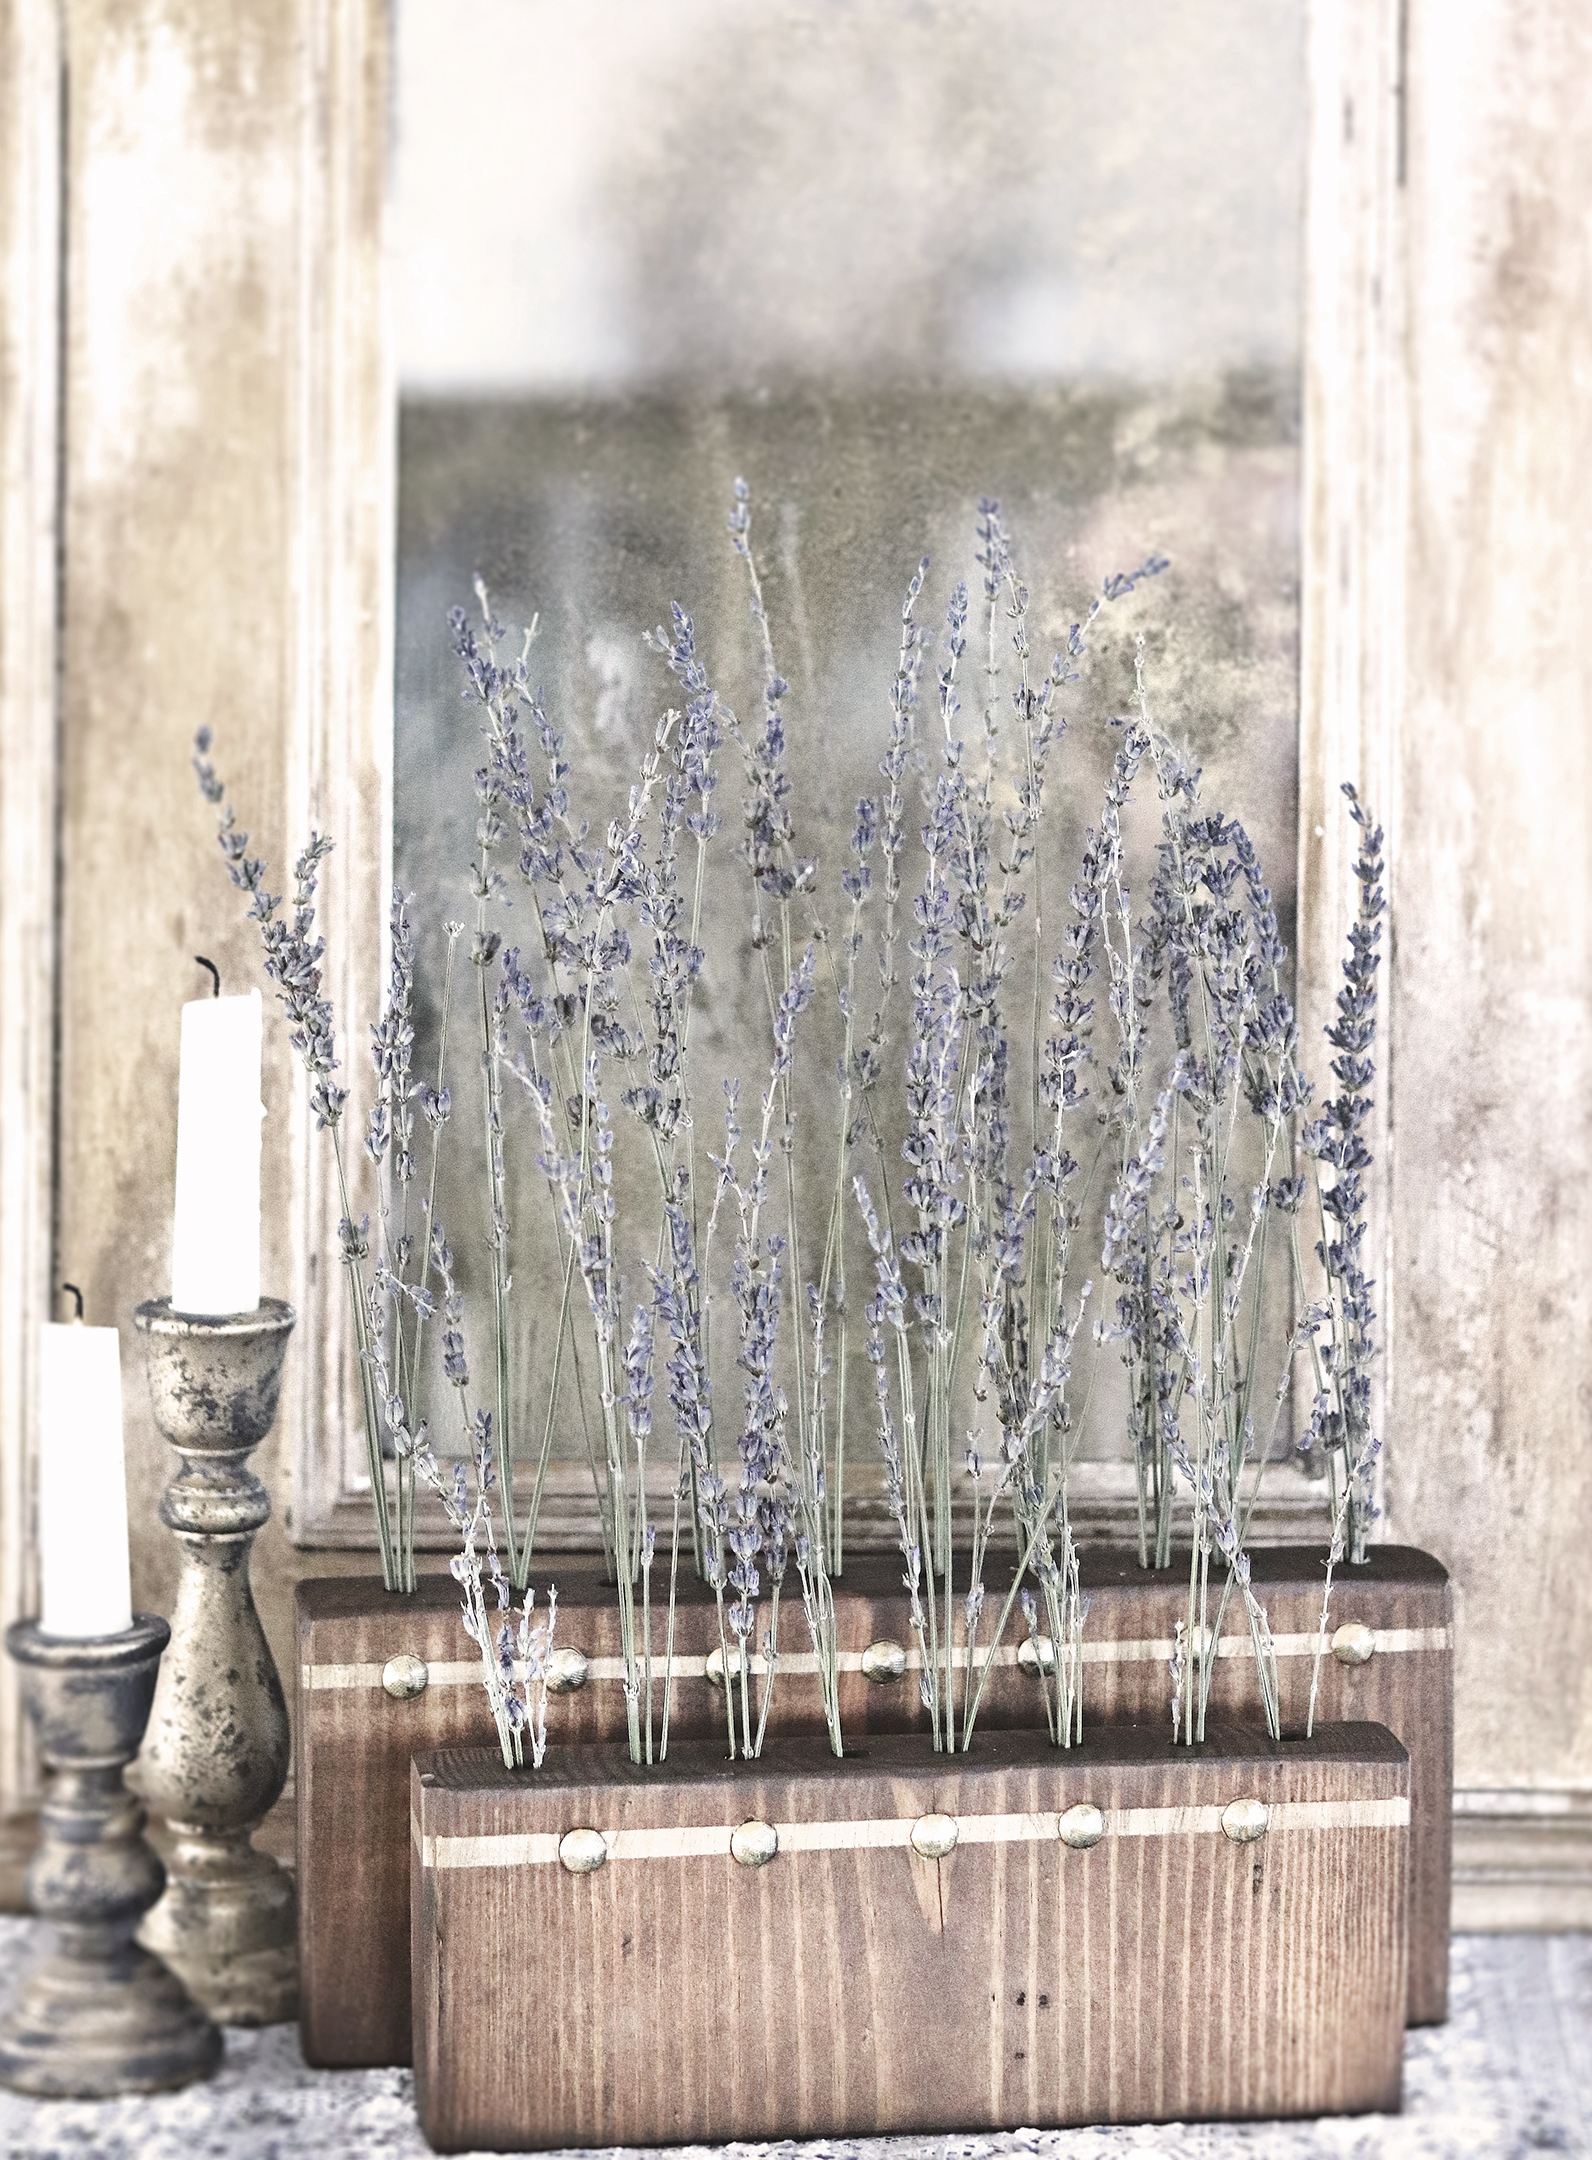 Boroughfare Home Vintage Lavender Set with Antique Gold Trim and Tacks